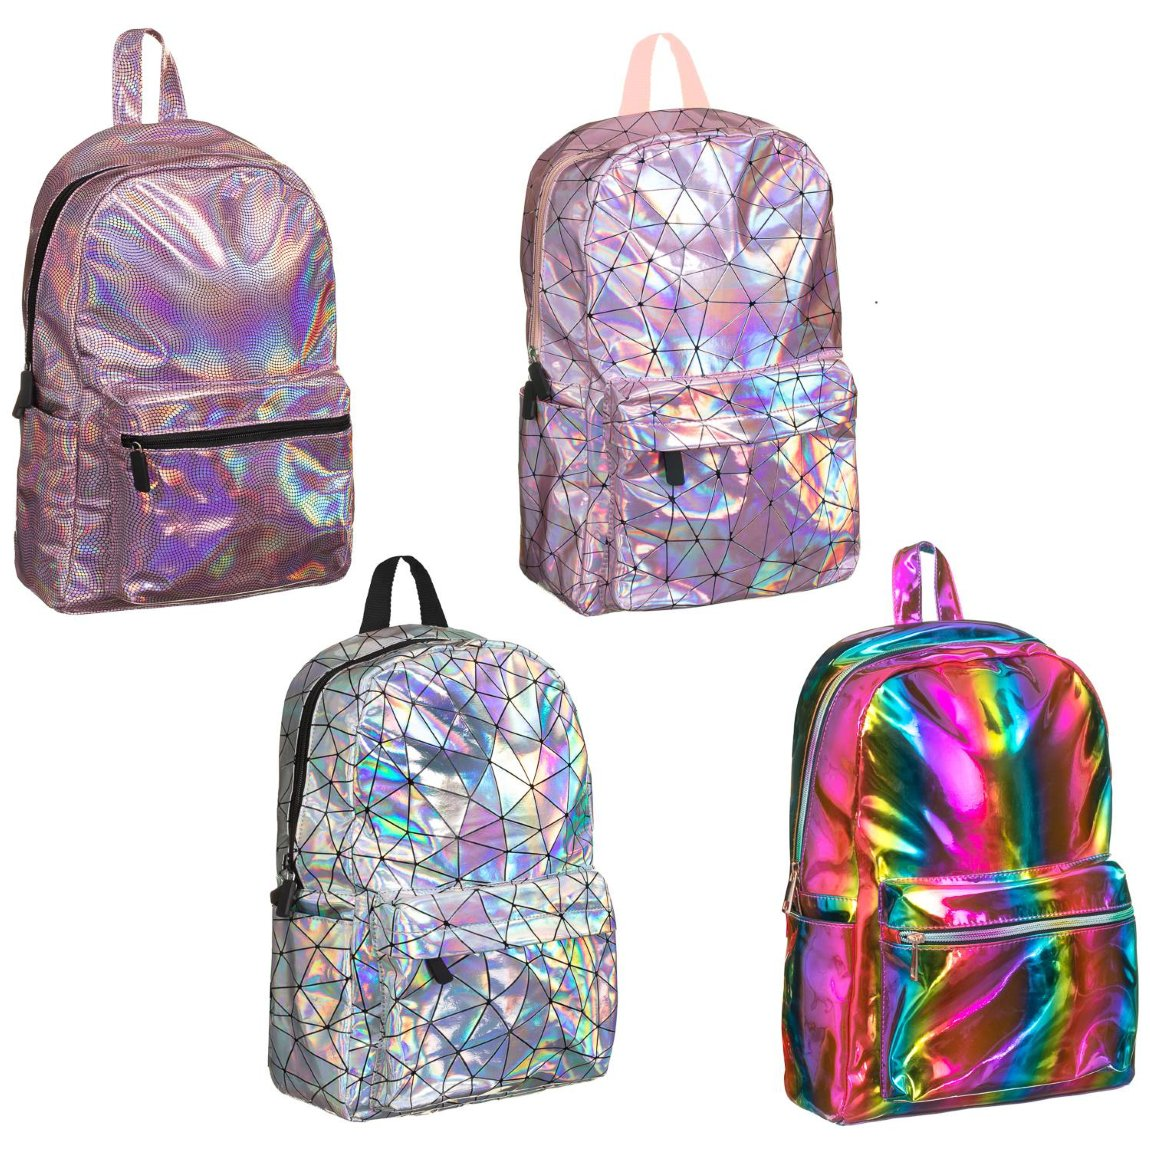 Holographic Backpack - Rainbow